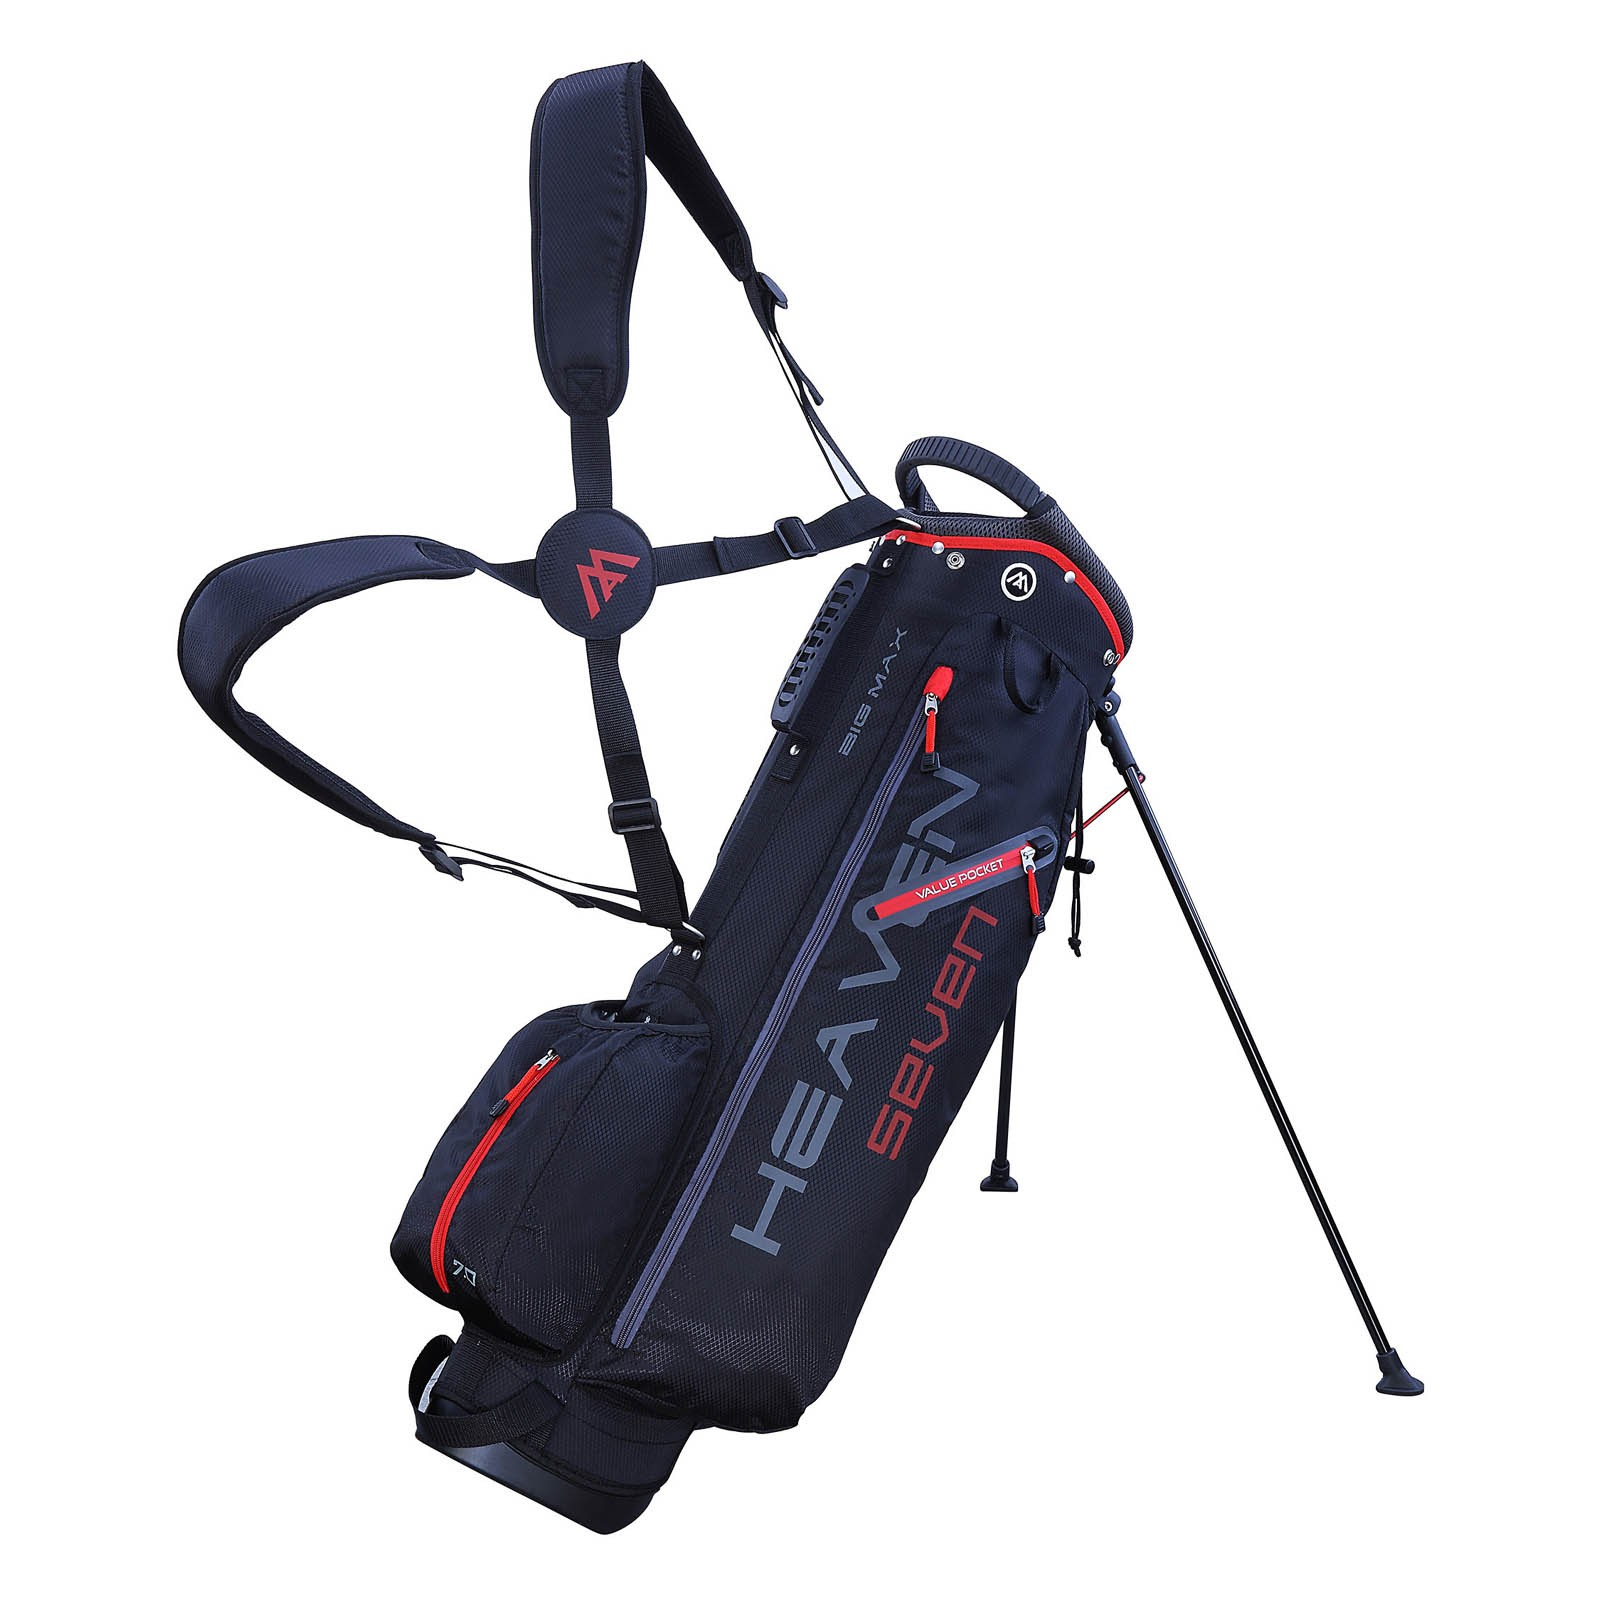 Big Max Heaven 7.0 Stand Bags